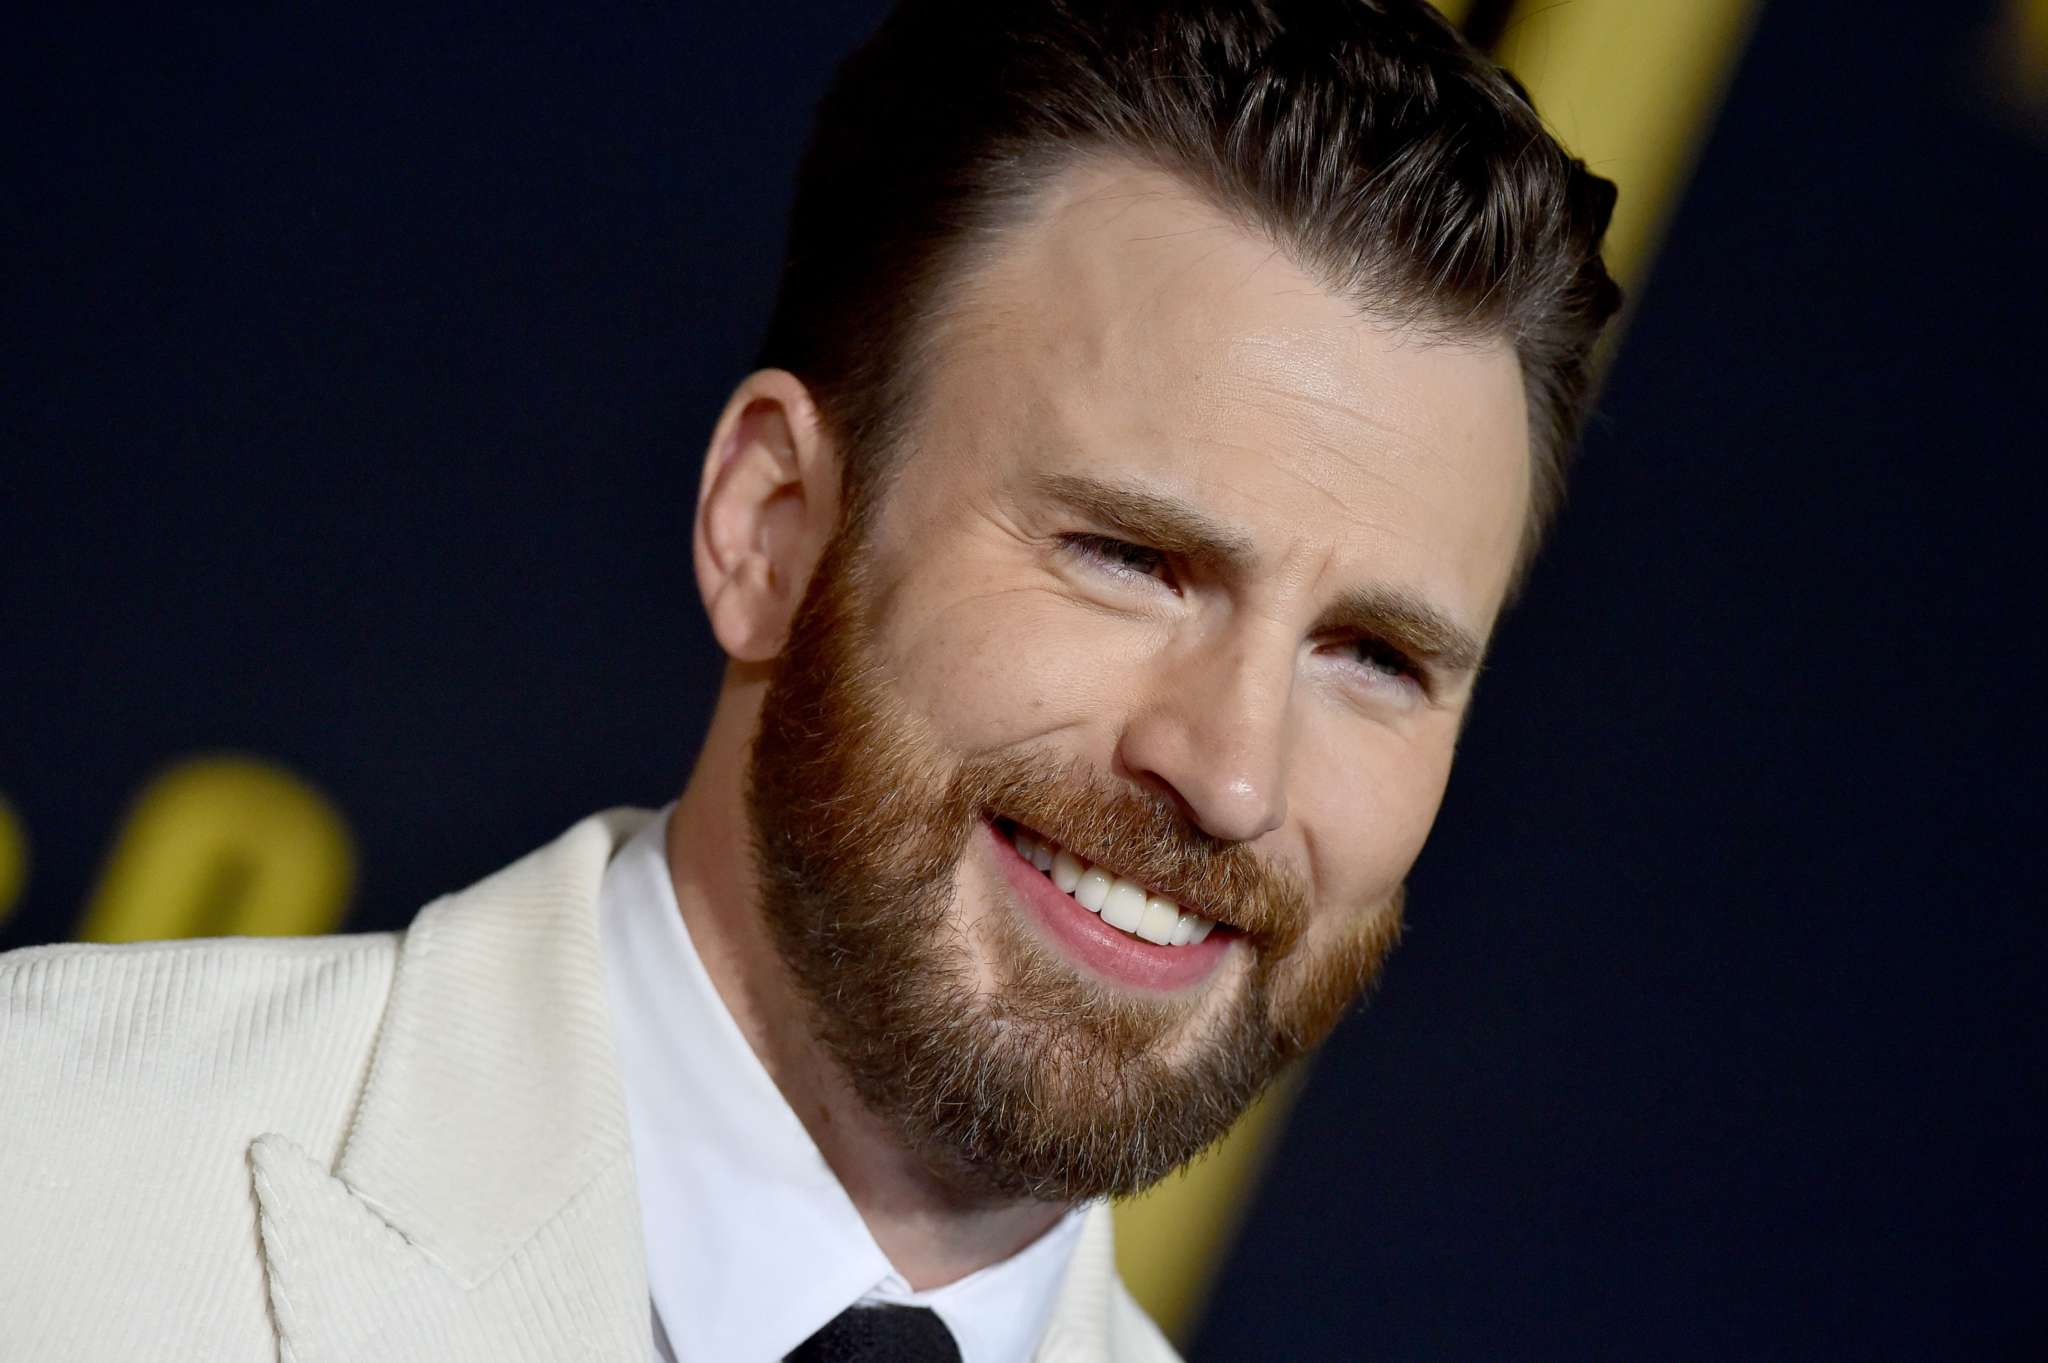 Chris Evans Opens Up About His 'Embarrassing' Photo Leak